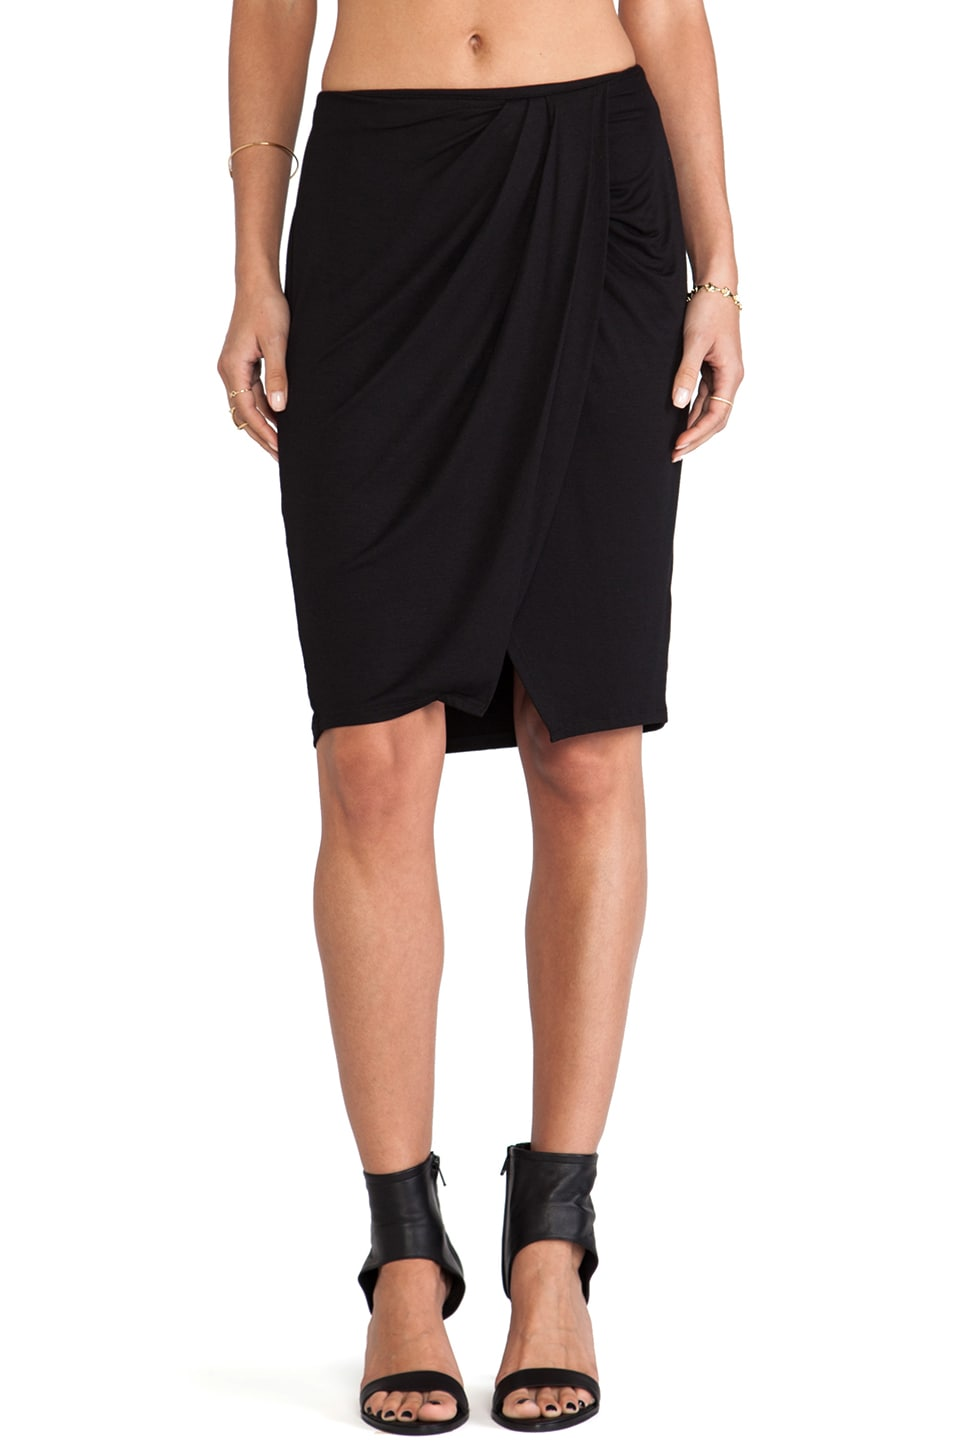 Ella Moss Tali Skirt in Black